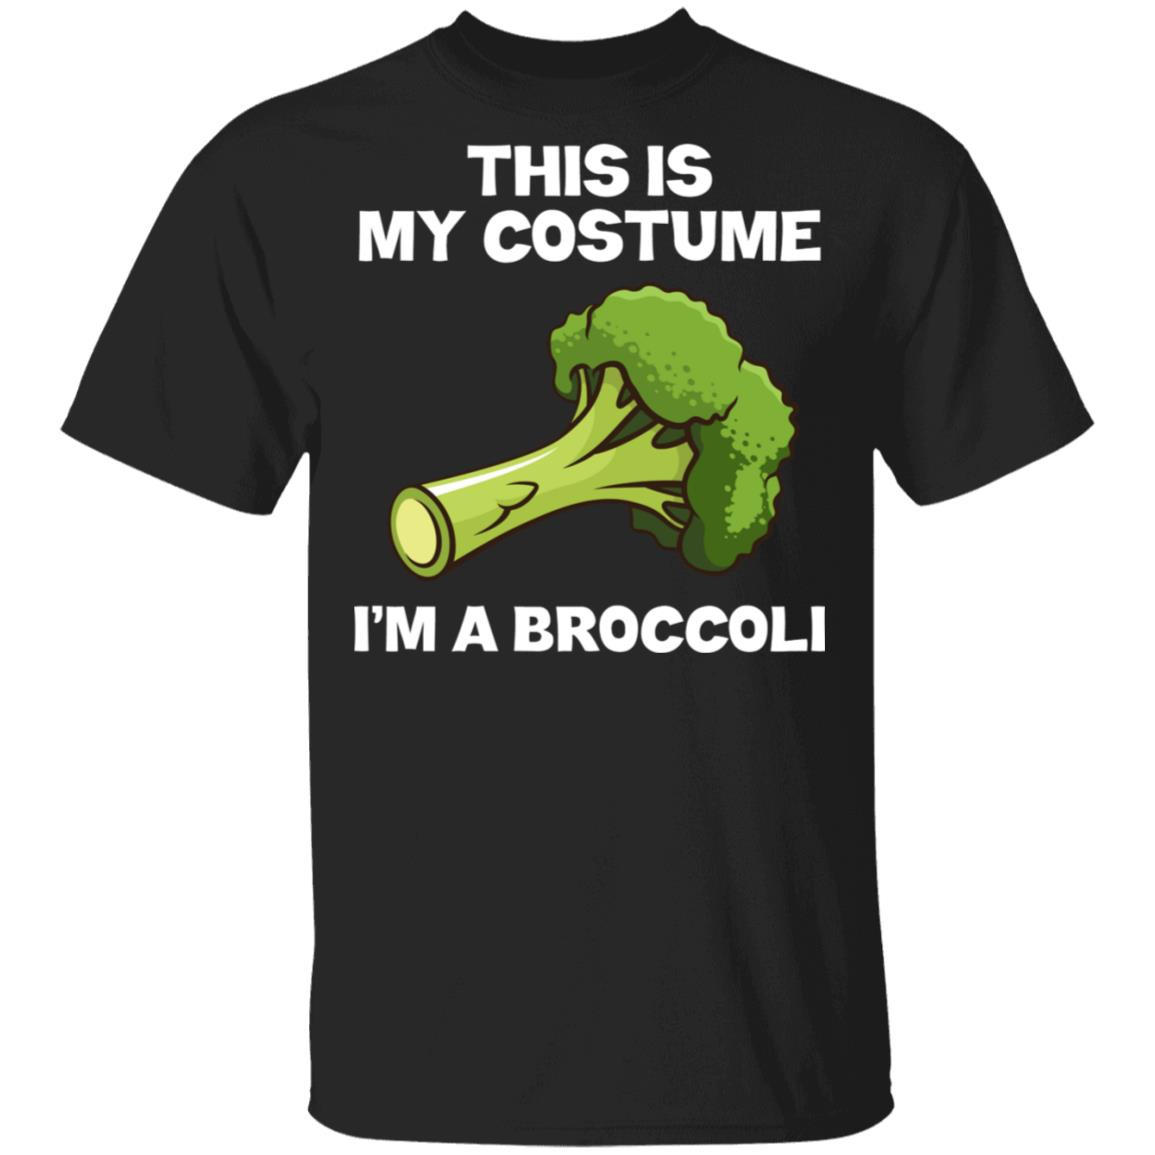 I'm A Broccoli This Is My Costume Unisex Short Sleeve